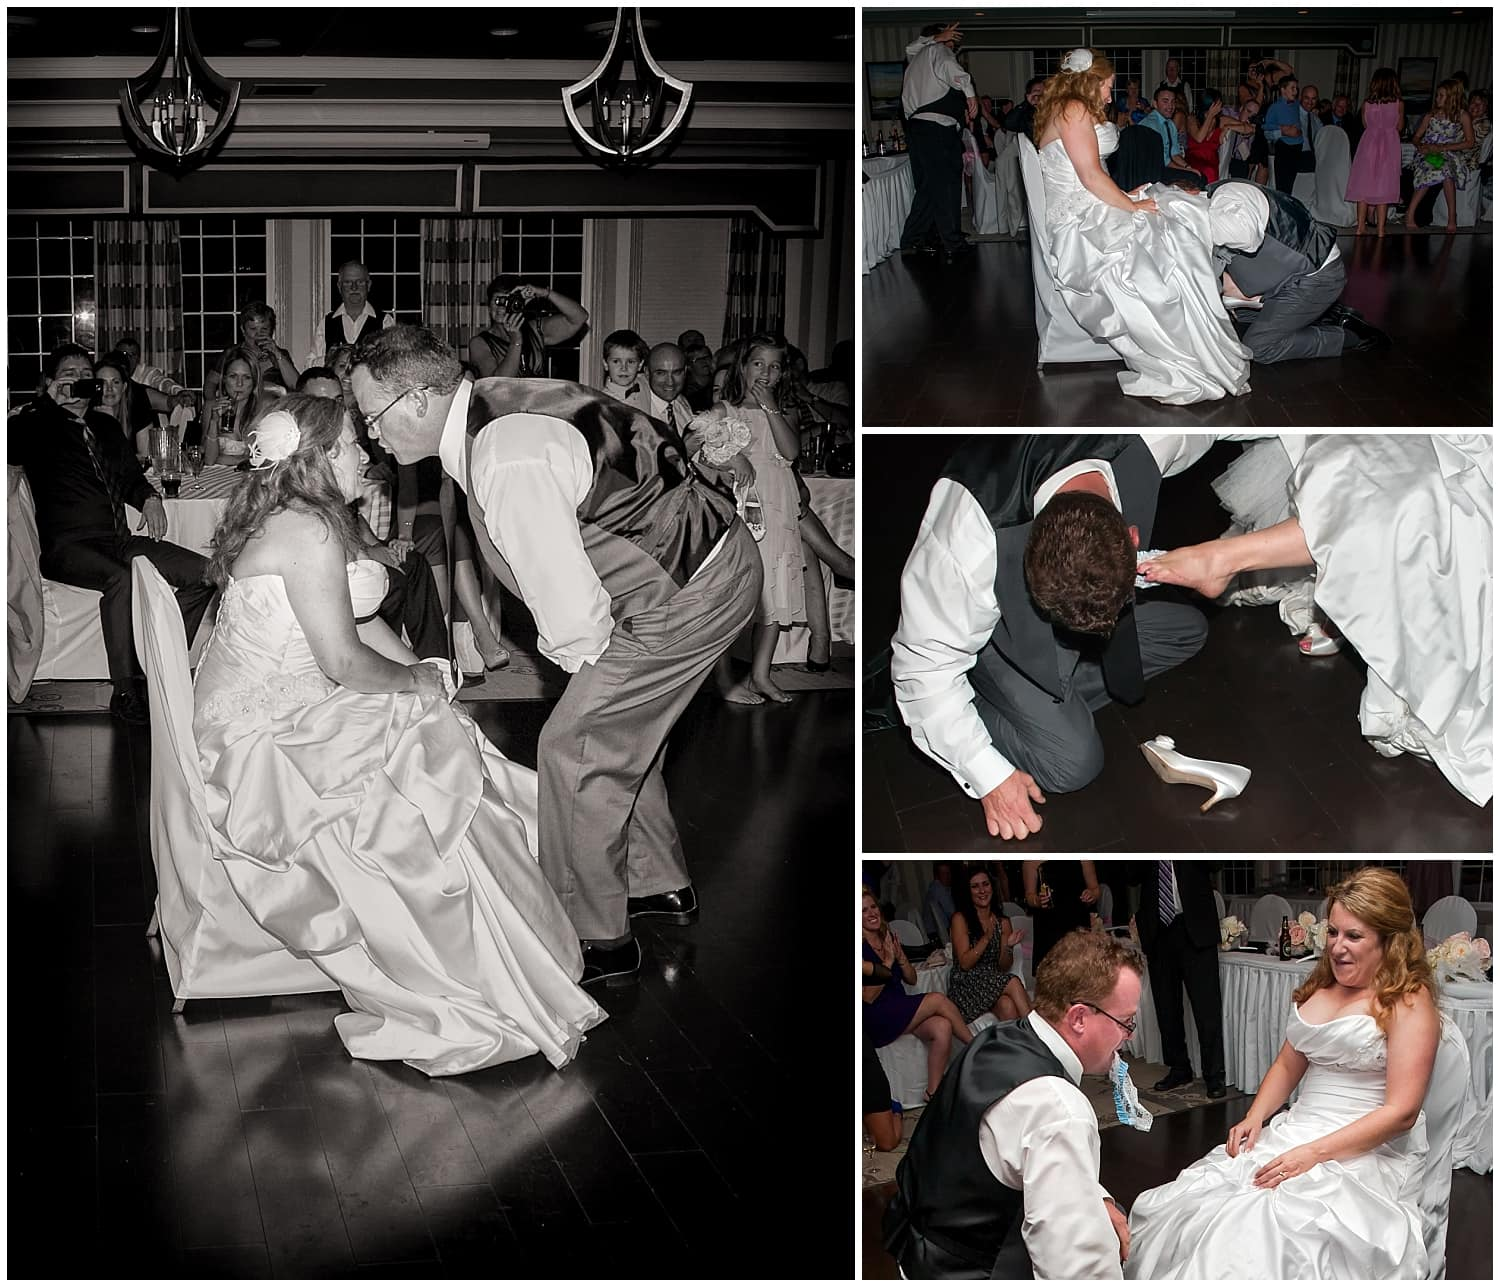 The garter toss by the groom with the bride at their wedding reception at Ashburn Golf Club in Halifax, NS.